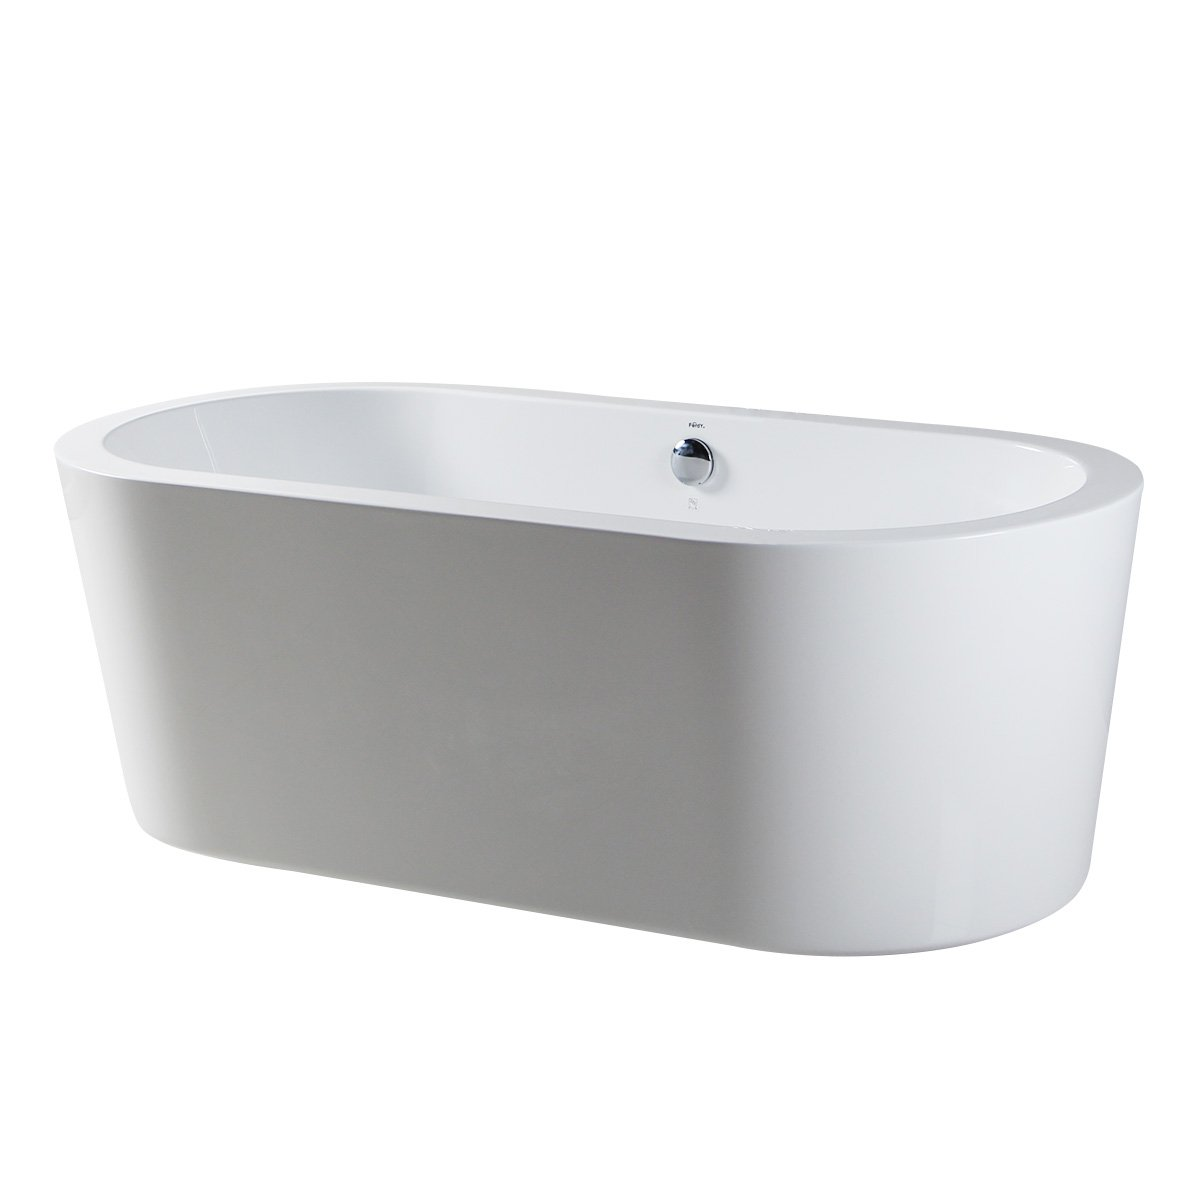 FerdY 67'' Freestanding Bathtub Bathroom Acrylic Soaking Bath tub stand alone tub Contemporary Style high glossy white cUPC Certified 74 gallons White by FerdY